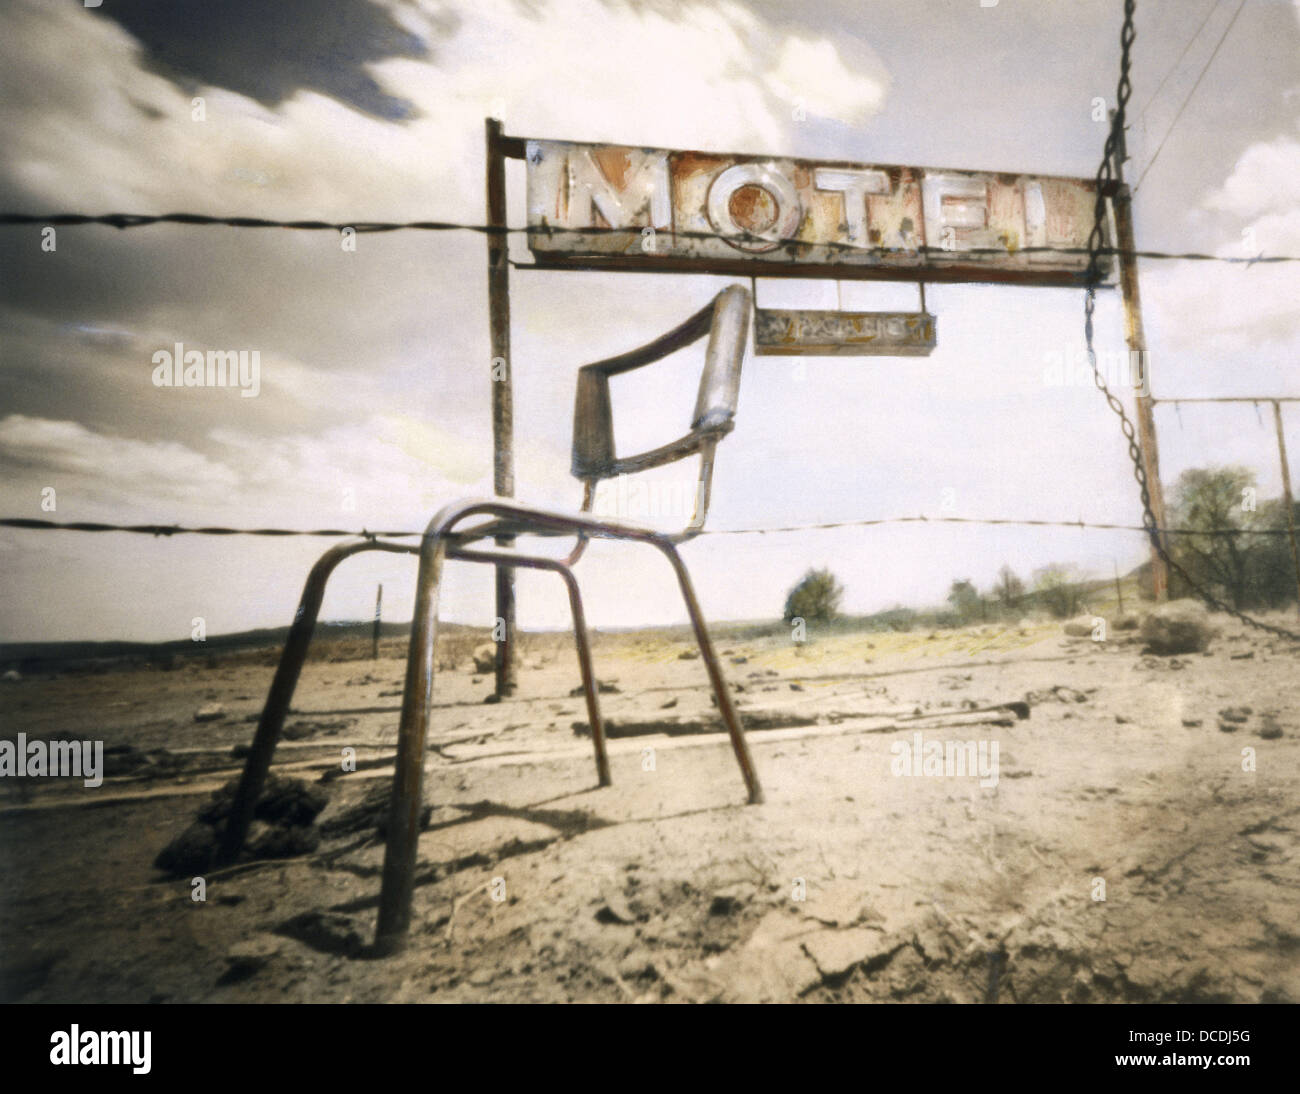 Broken Chair And Motel Sign On Old Route 66 New Mexico USA